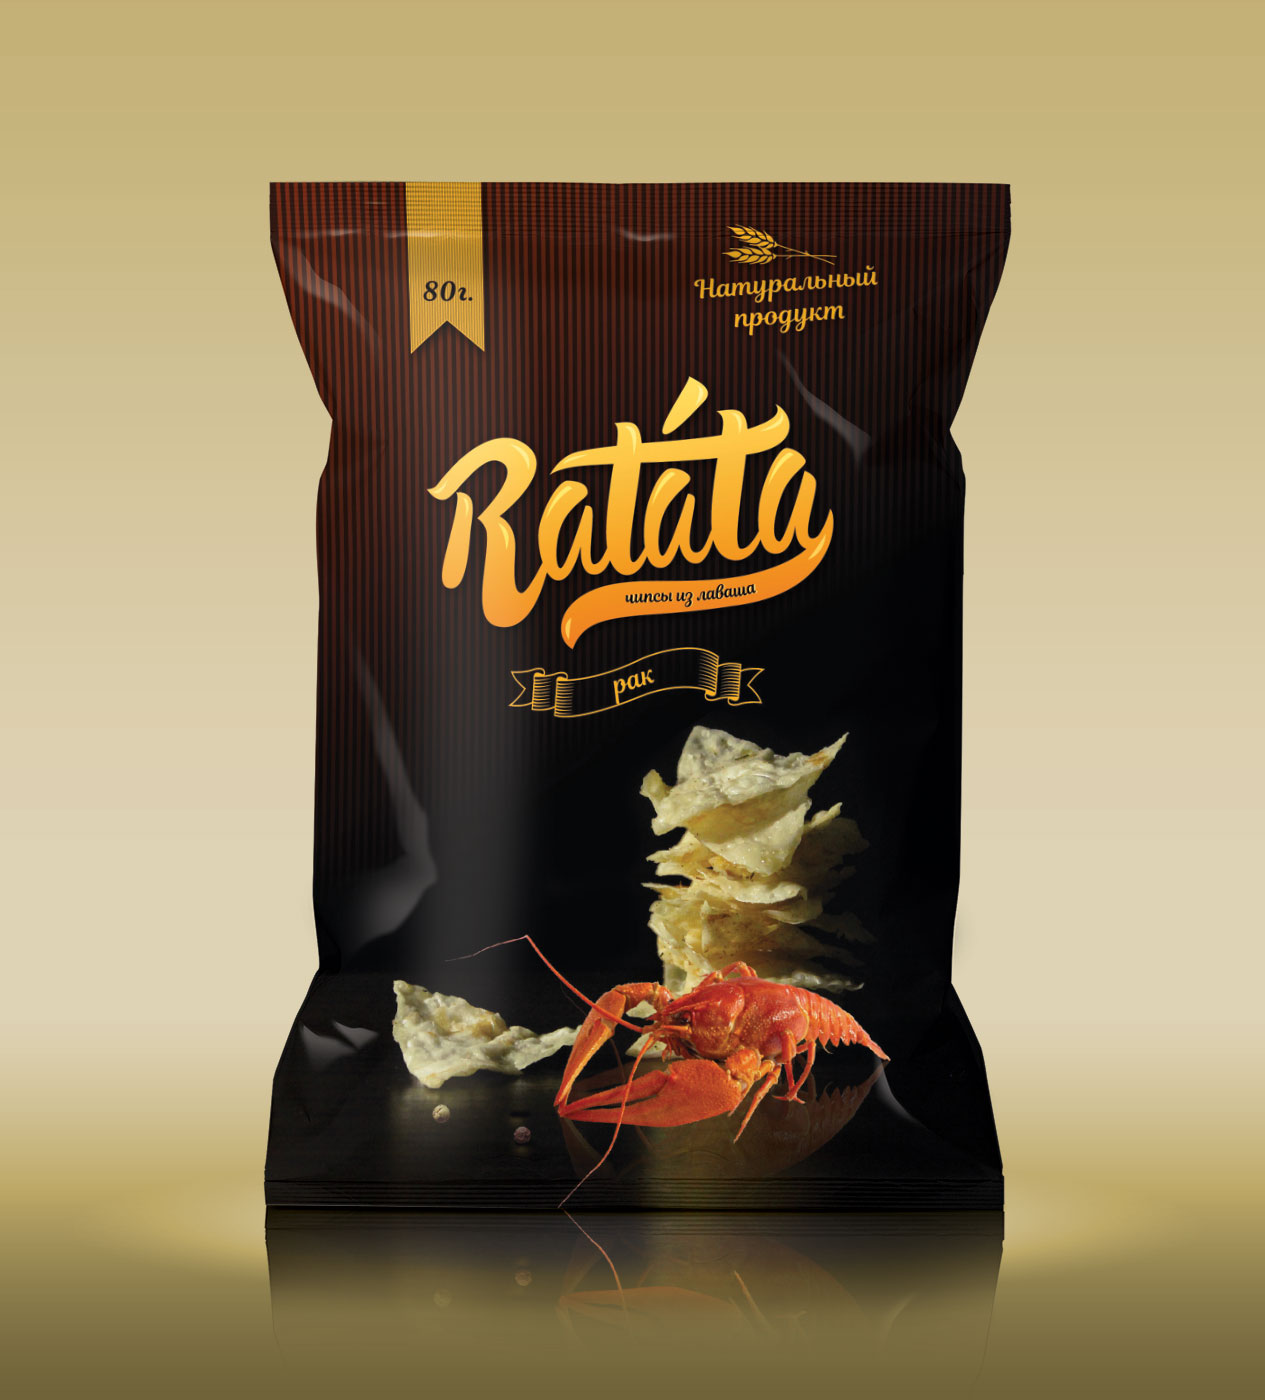 Packaging design para sa Ratata chips